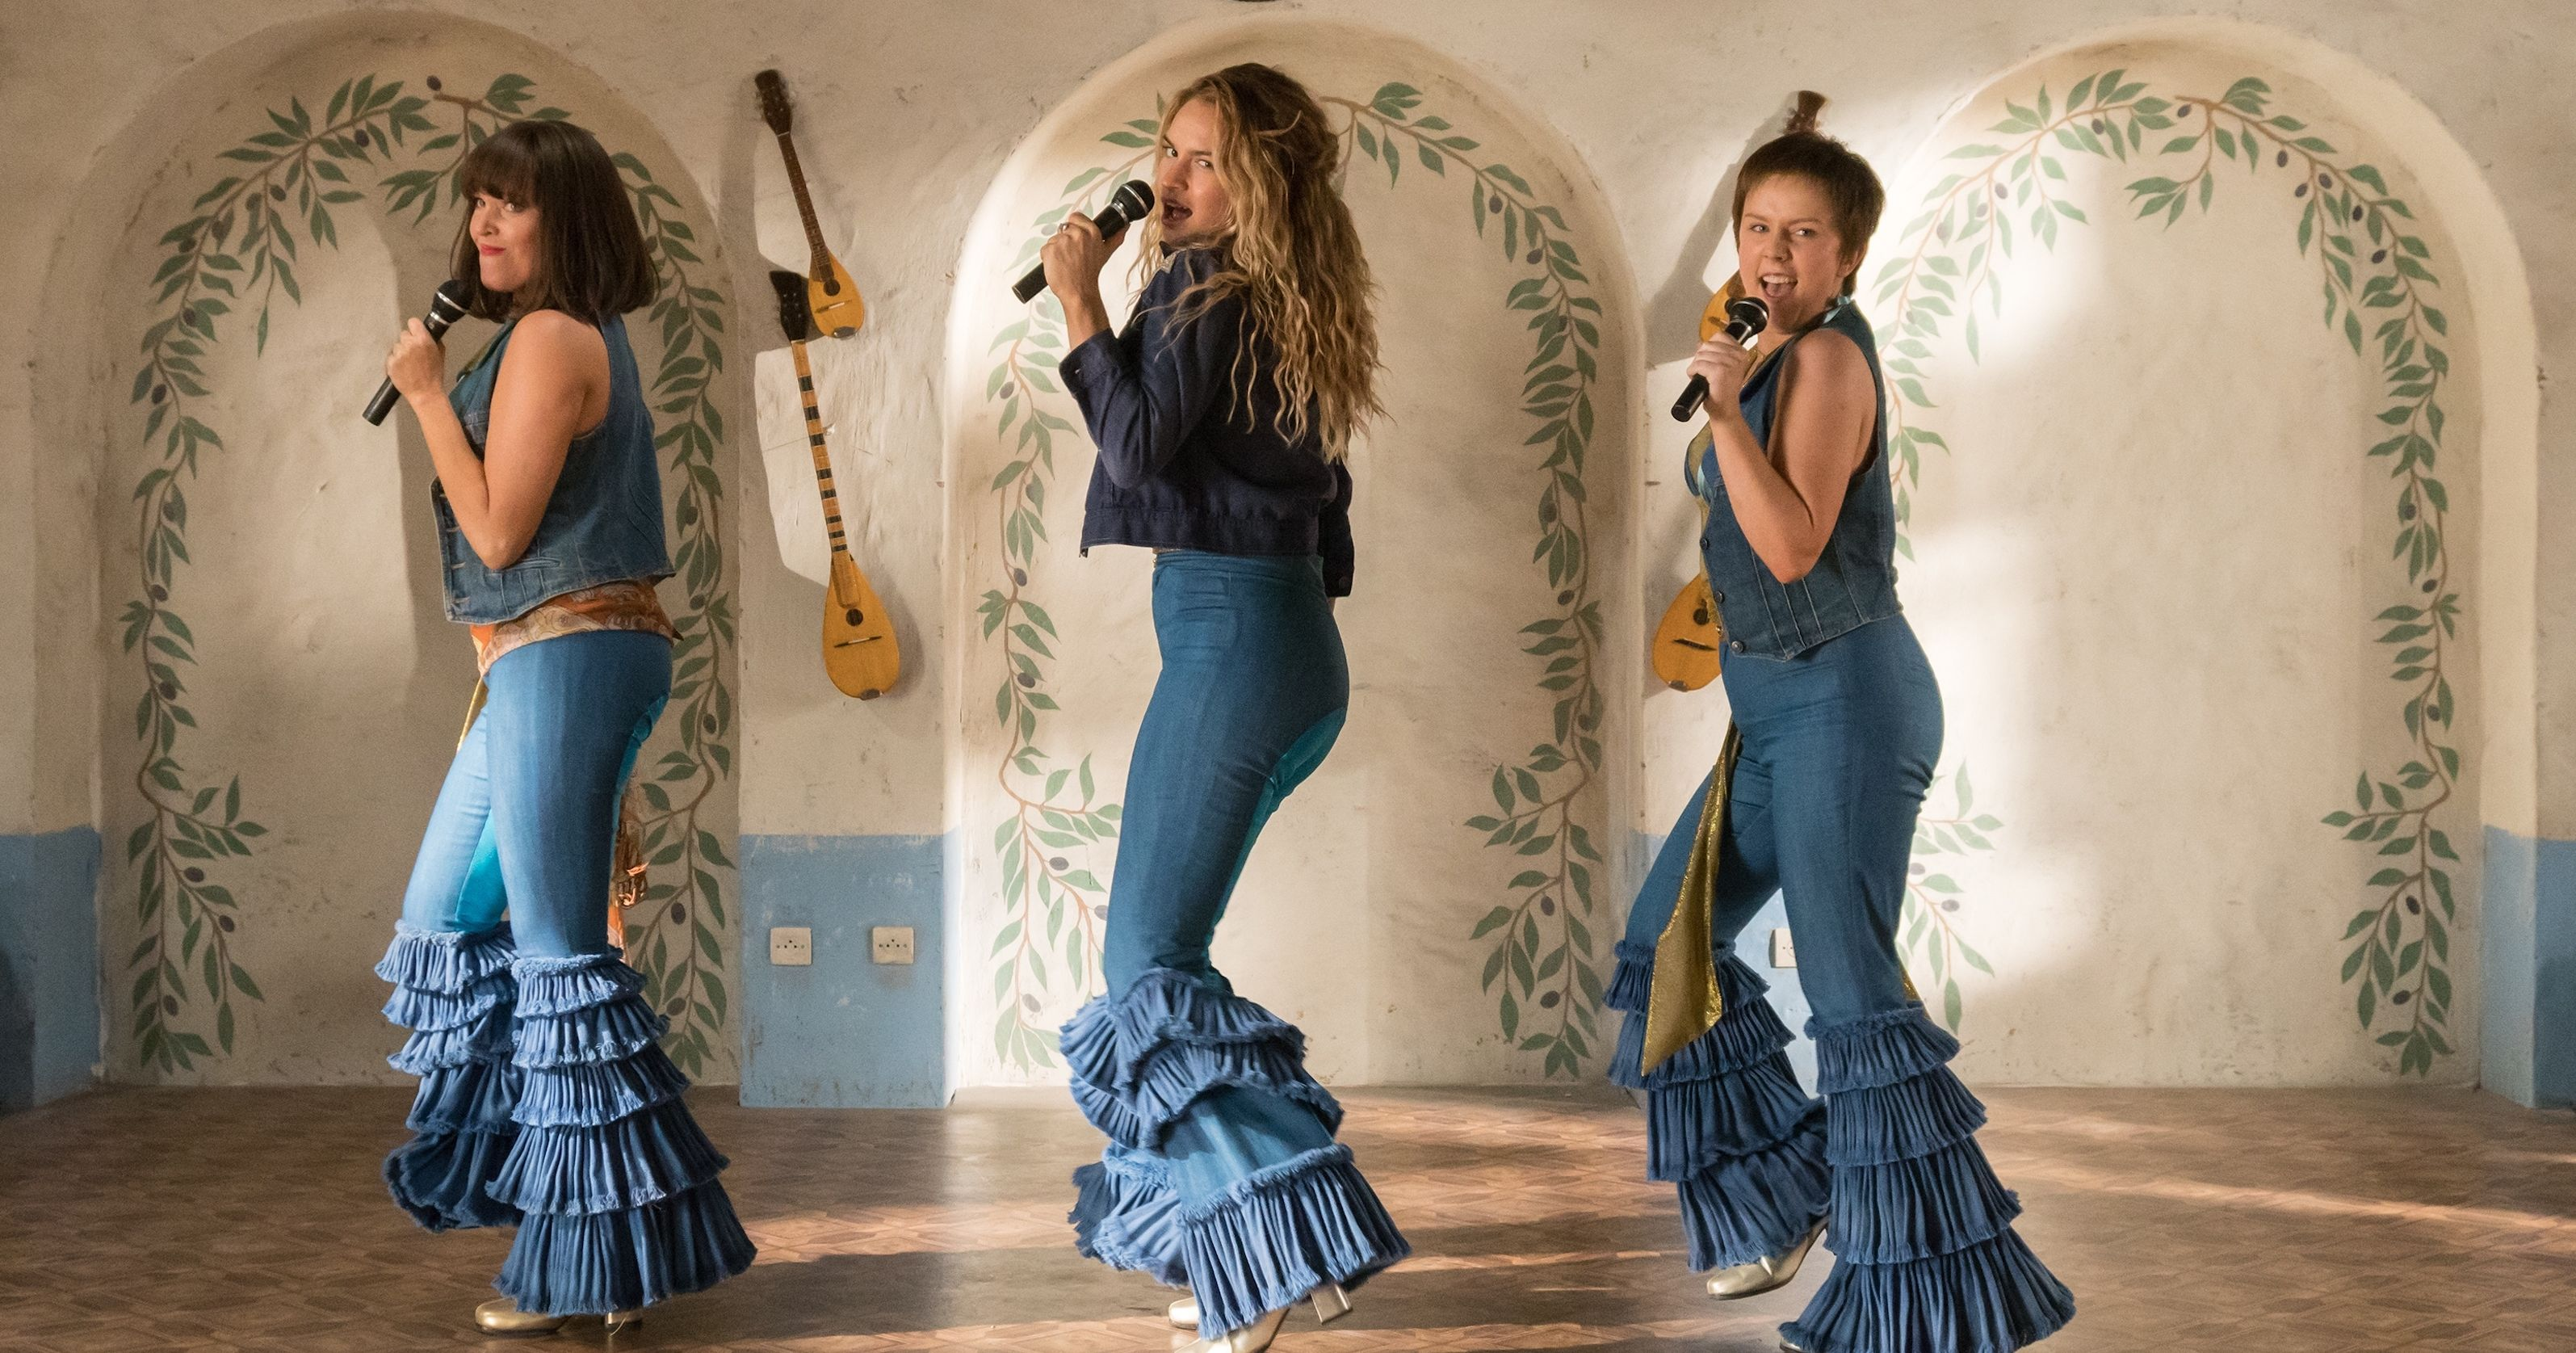 Lily James' Mamma Mia dances each took a week to film and we're knackered thinking about it